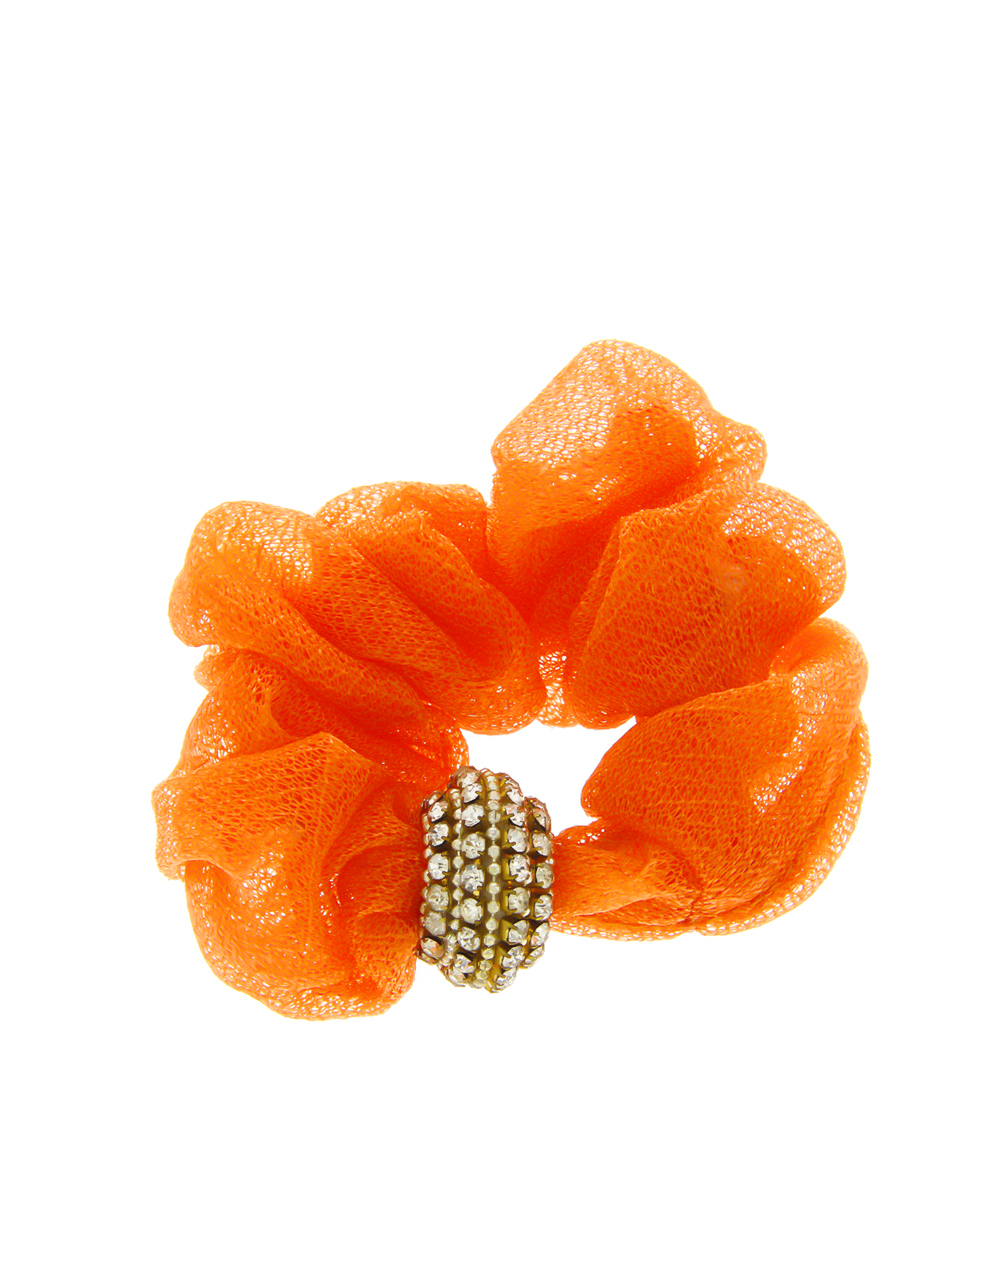 Orange Colour Studded With Stones Rubber Hair Band